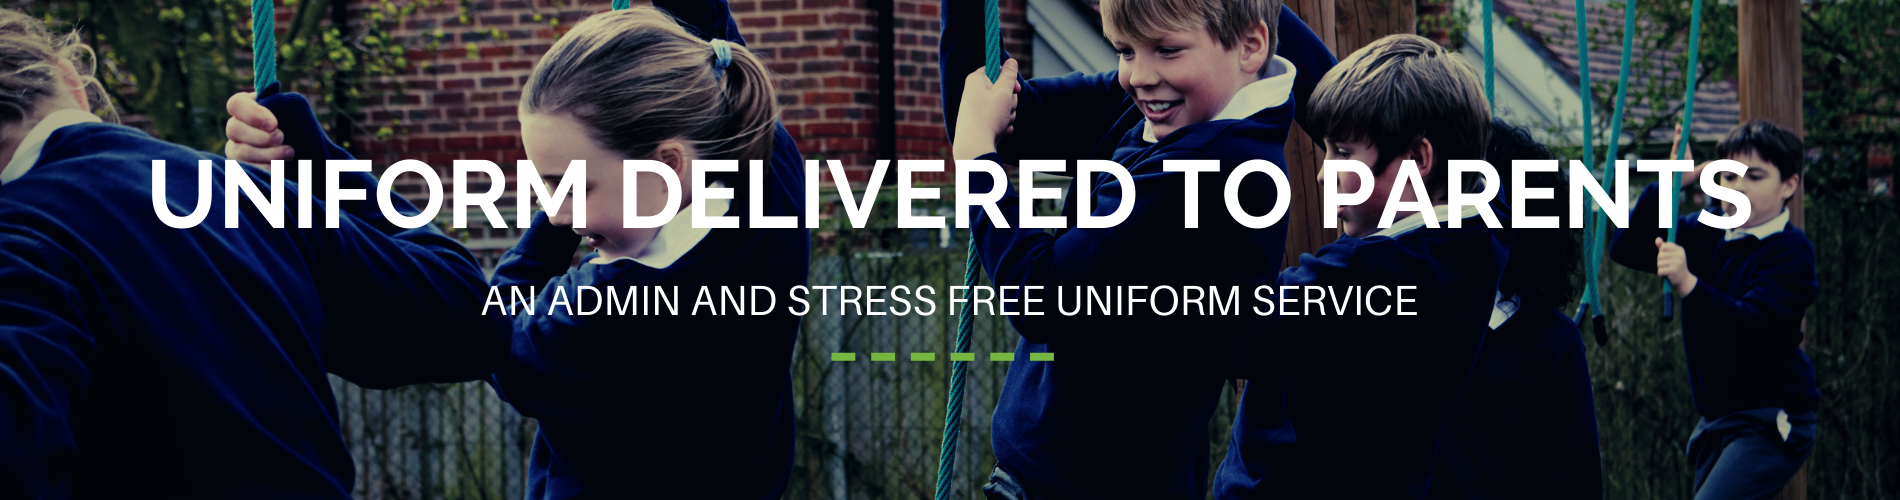 School uniform delivered | Direct to parent service | School Trends